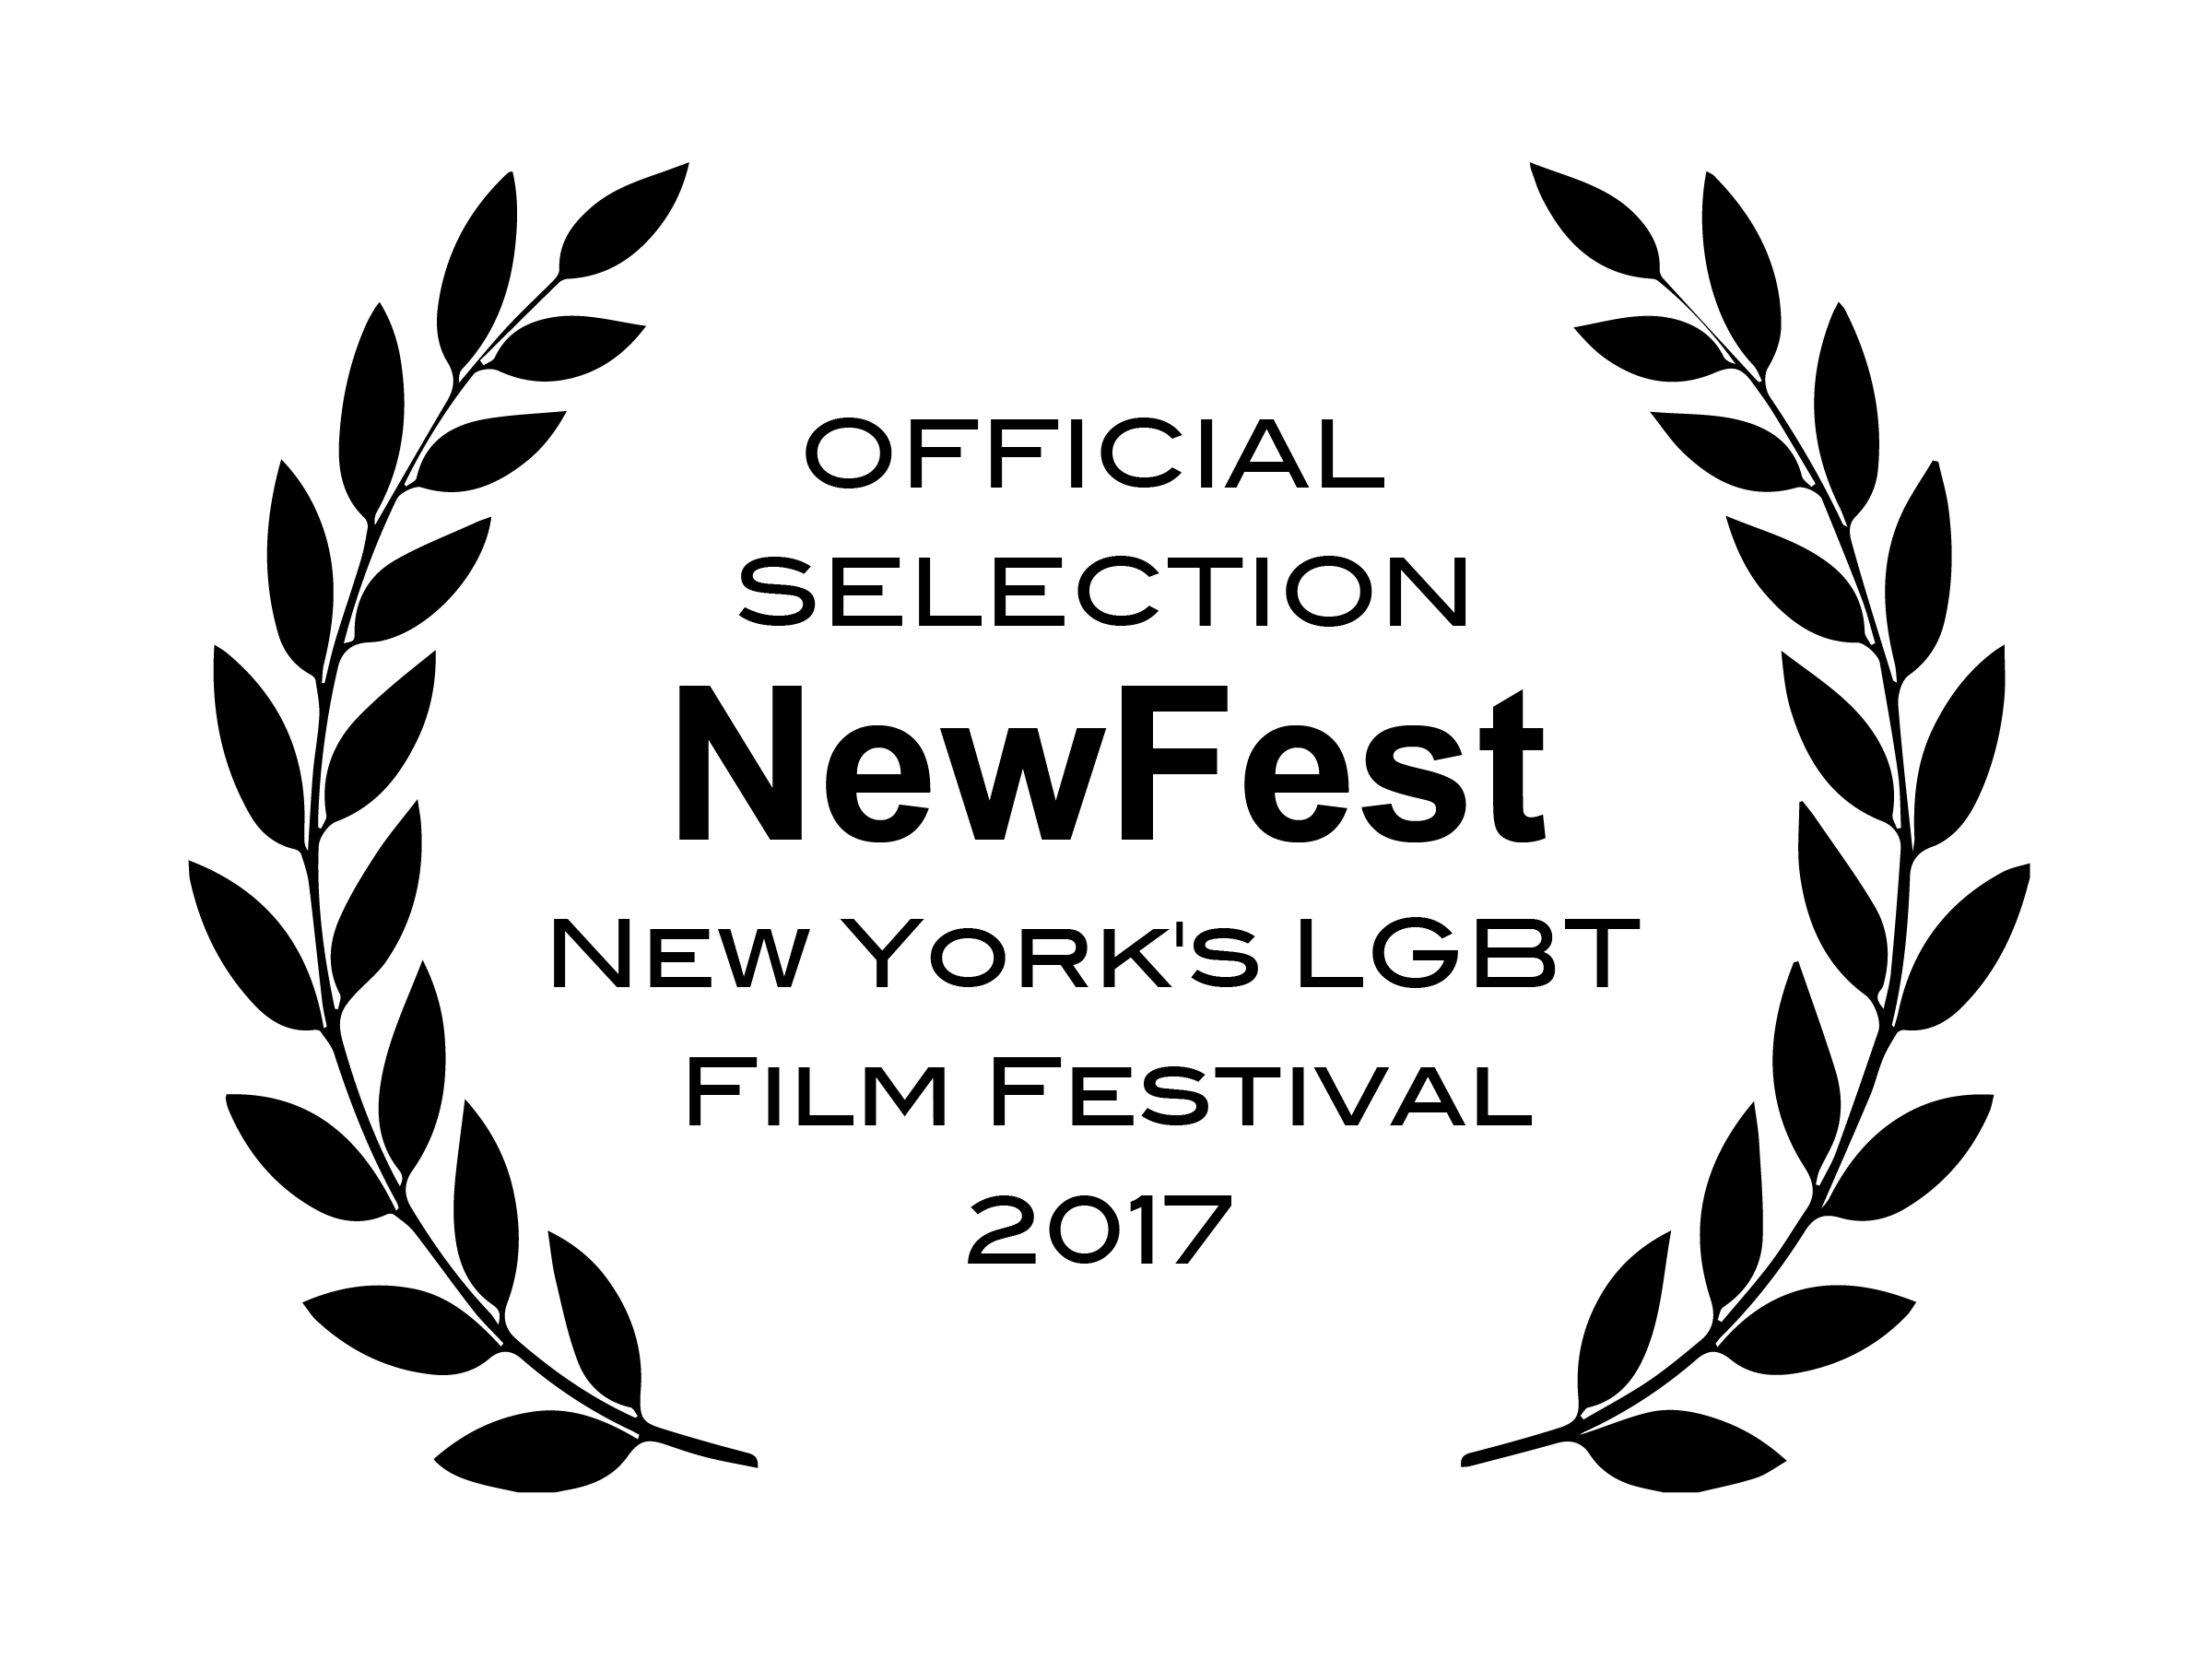 Newfest_Official Select_3 2 (4) (7).png